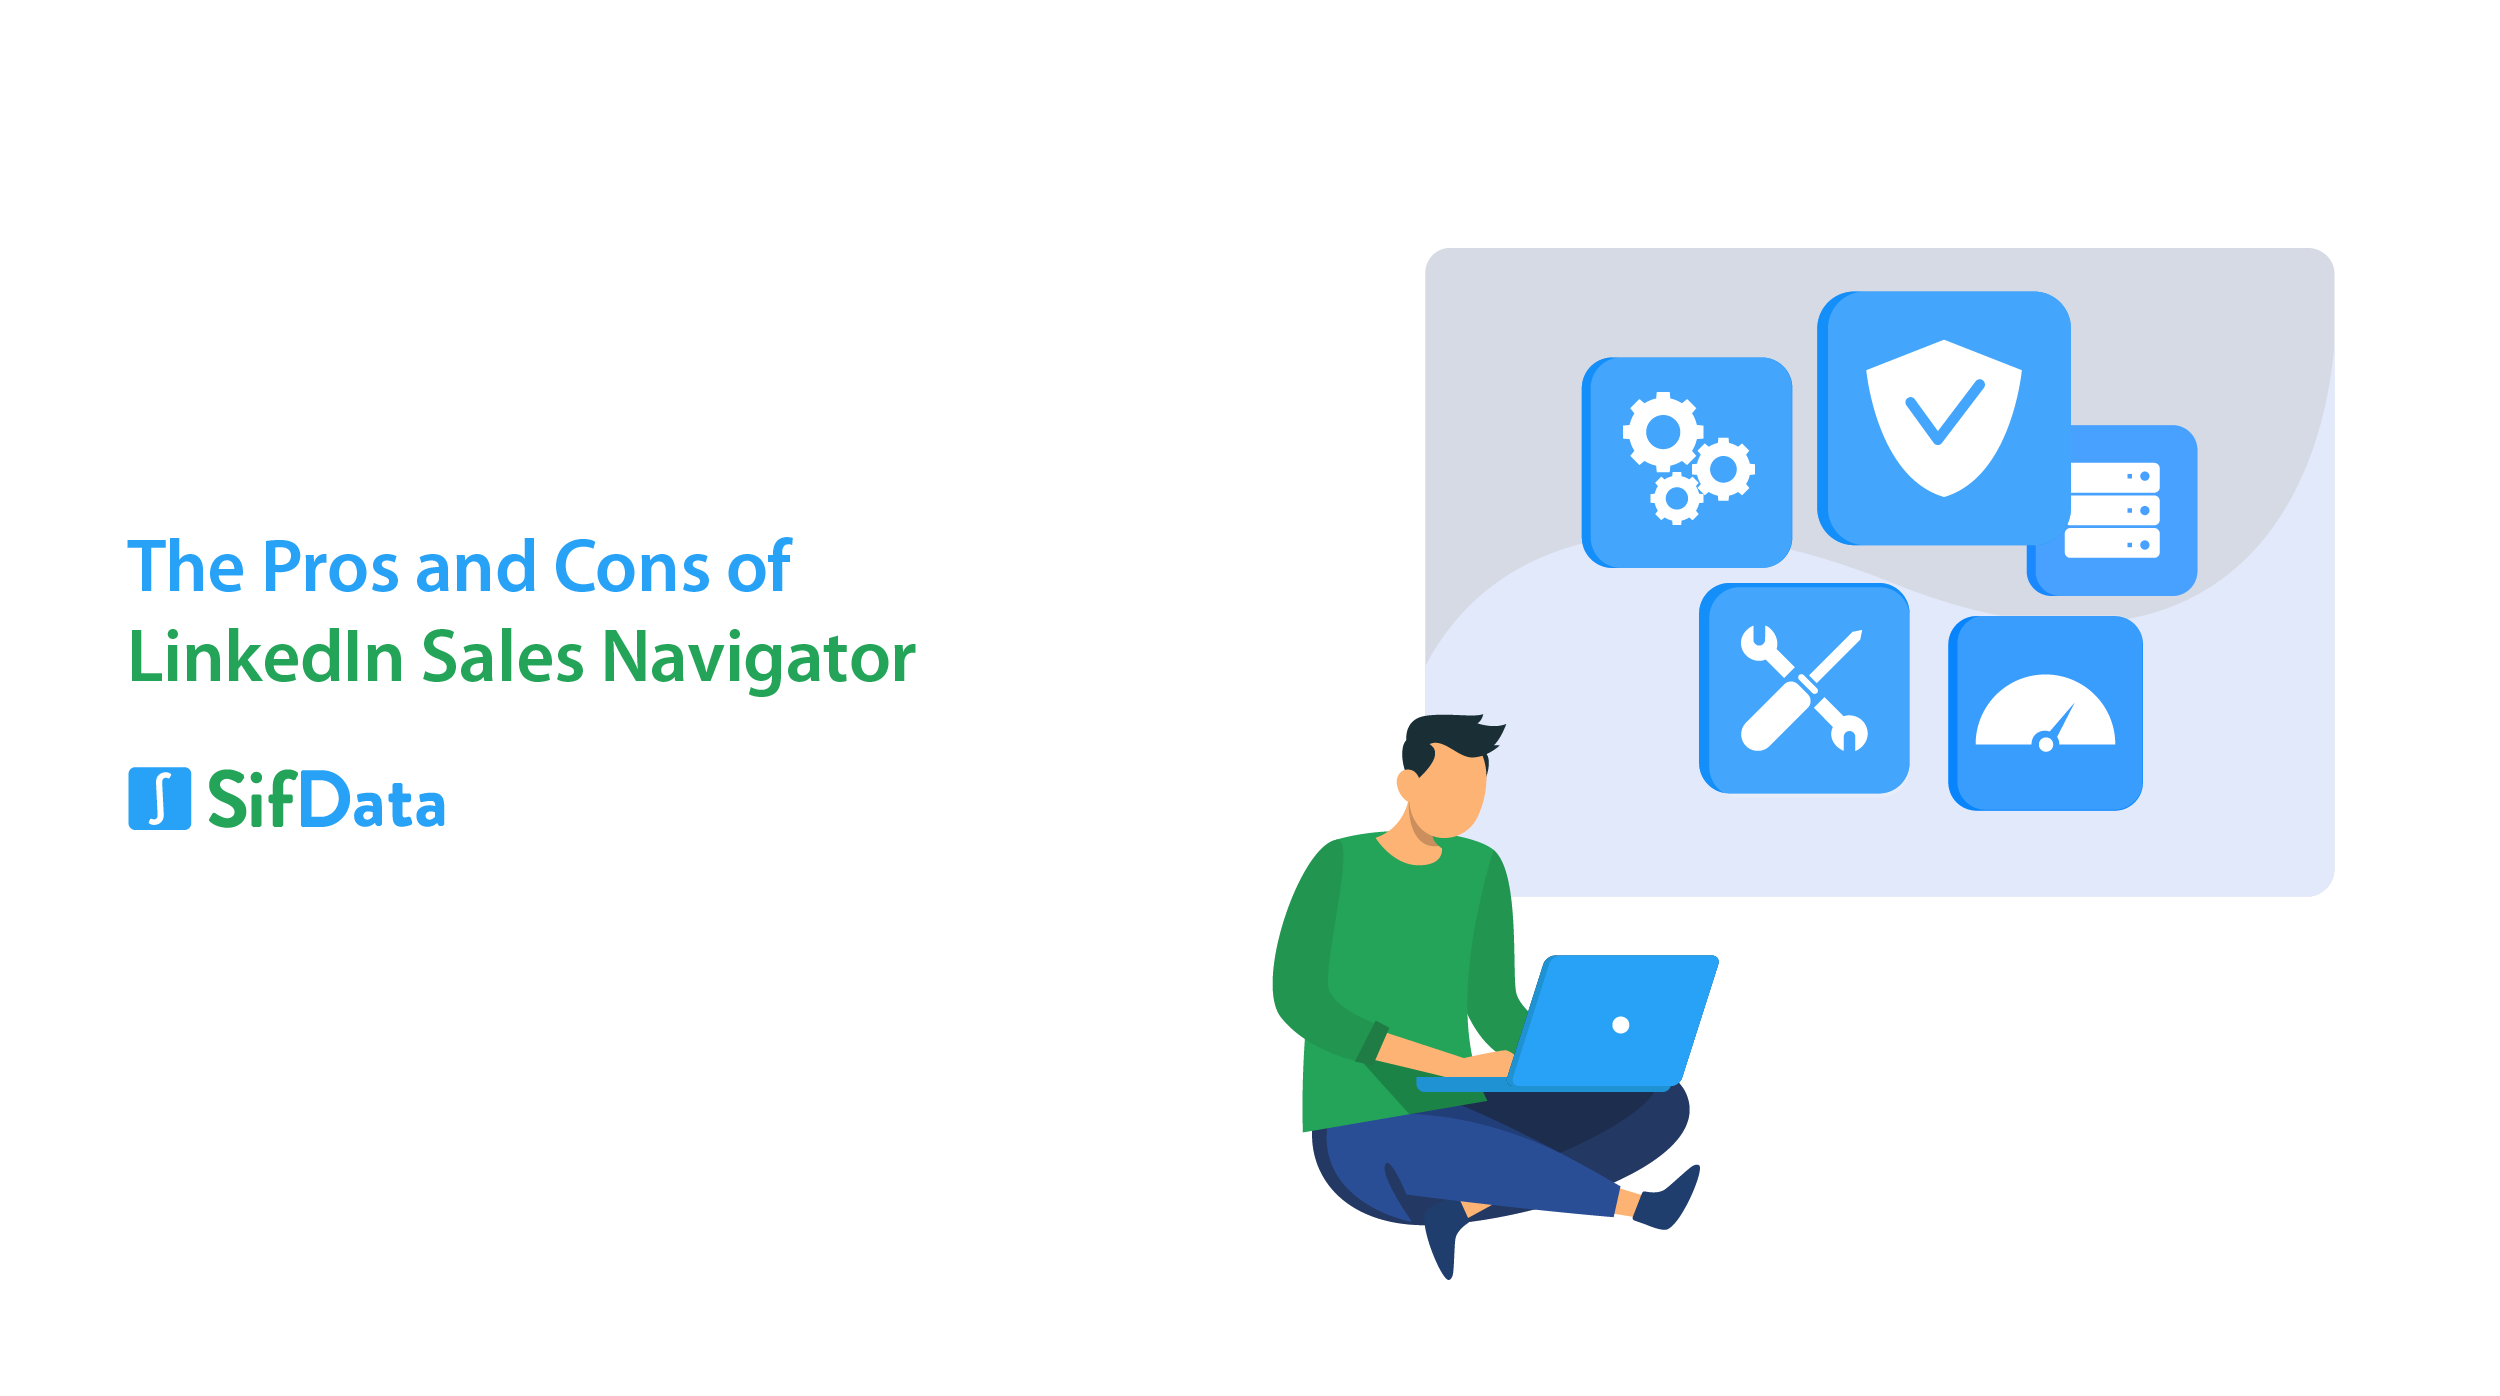 THE PROS AND CONS OF LINKEDIN SALES NAVIGATOR